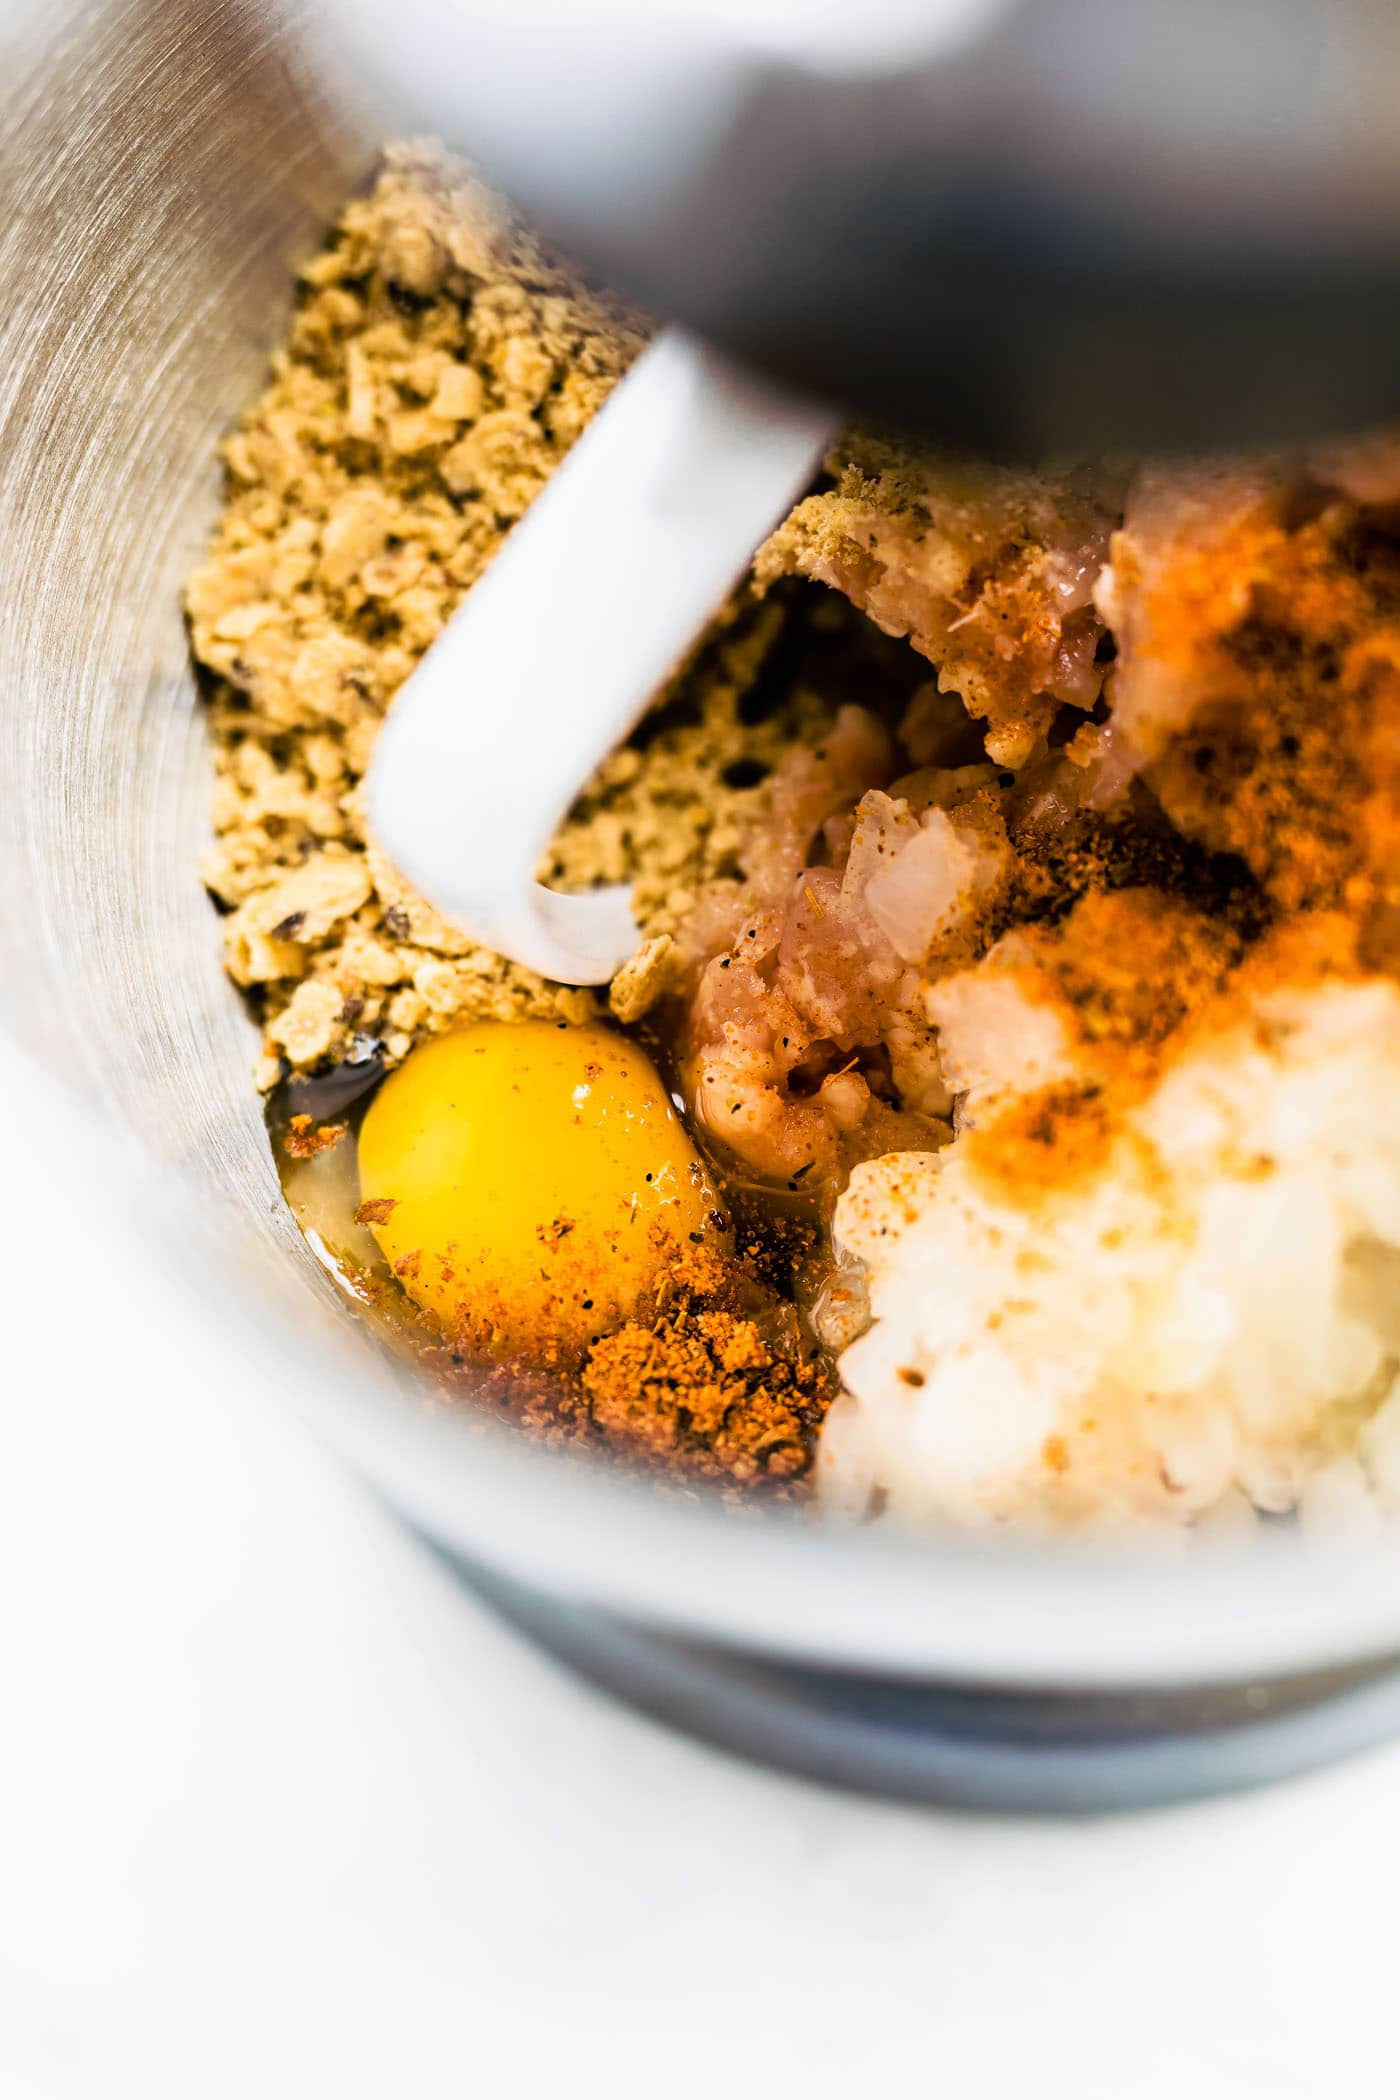 mixing ingredients for gluten free meatloaf without breadcrumbs